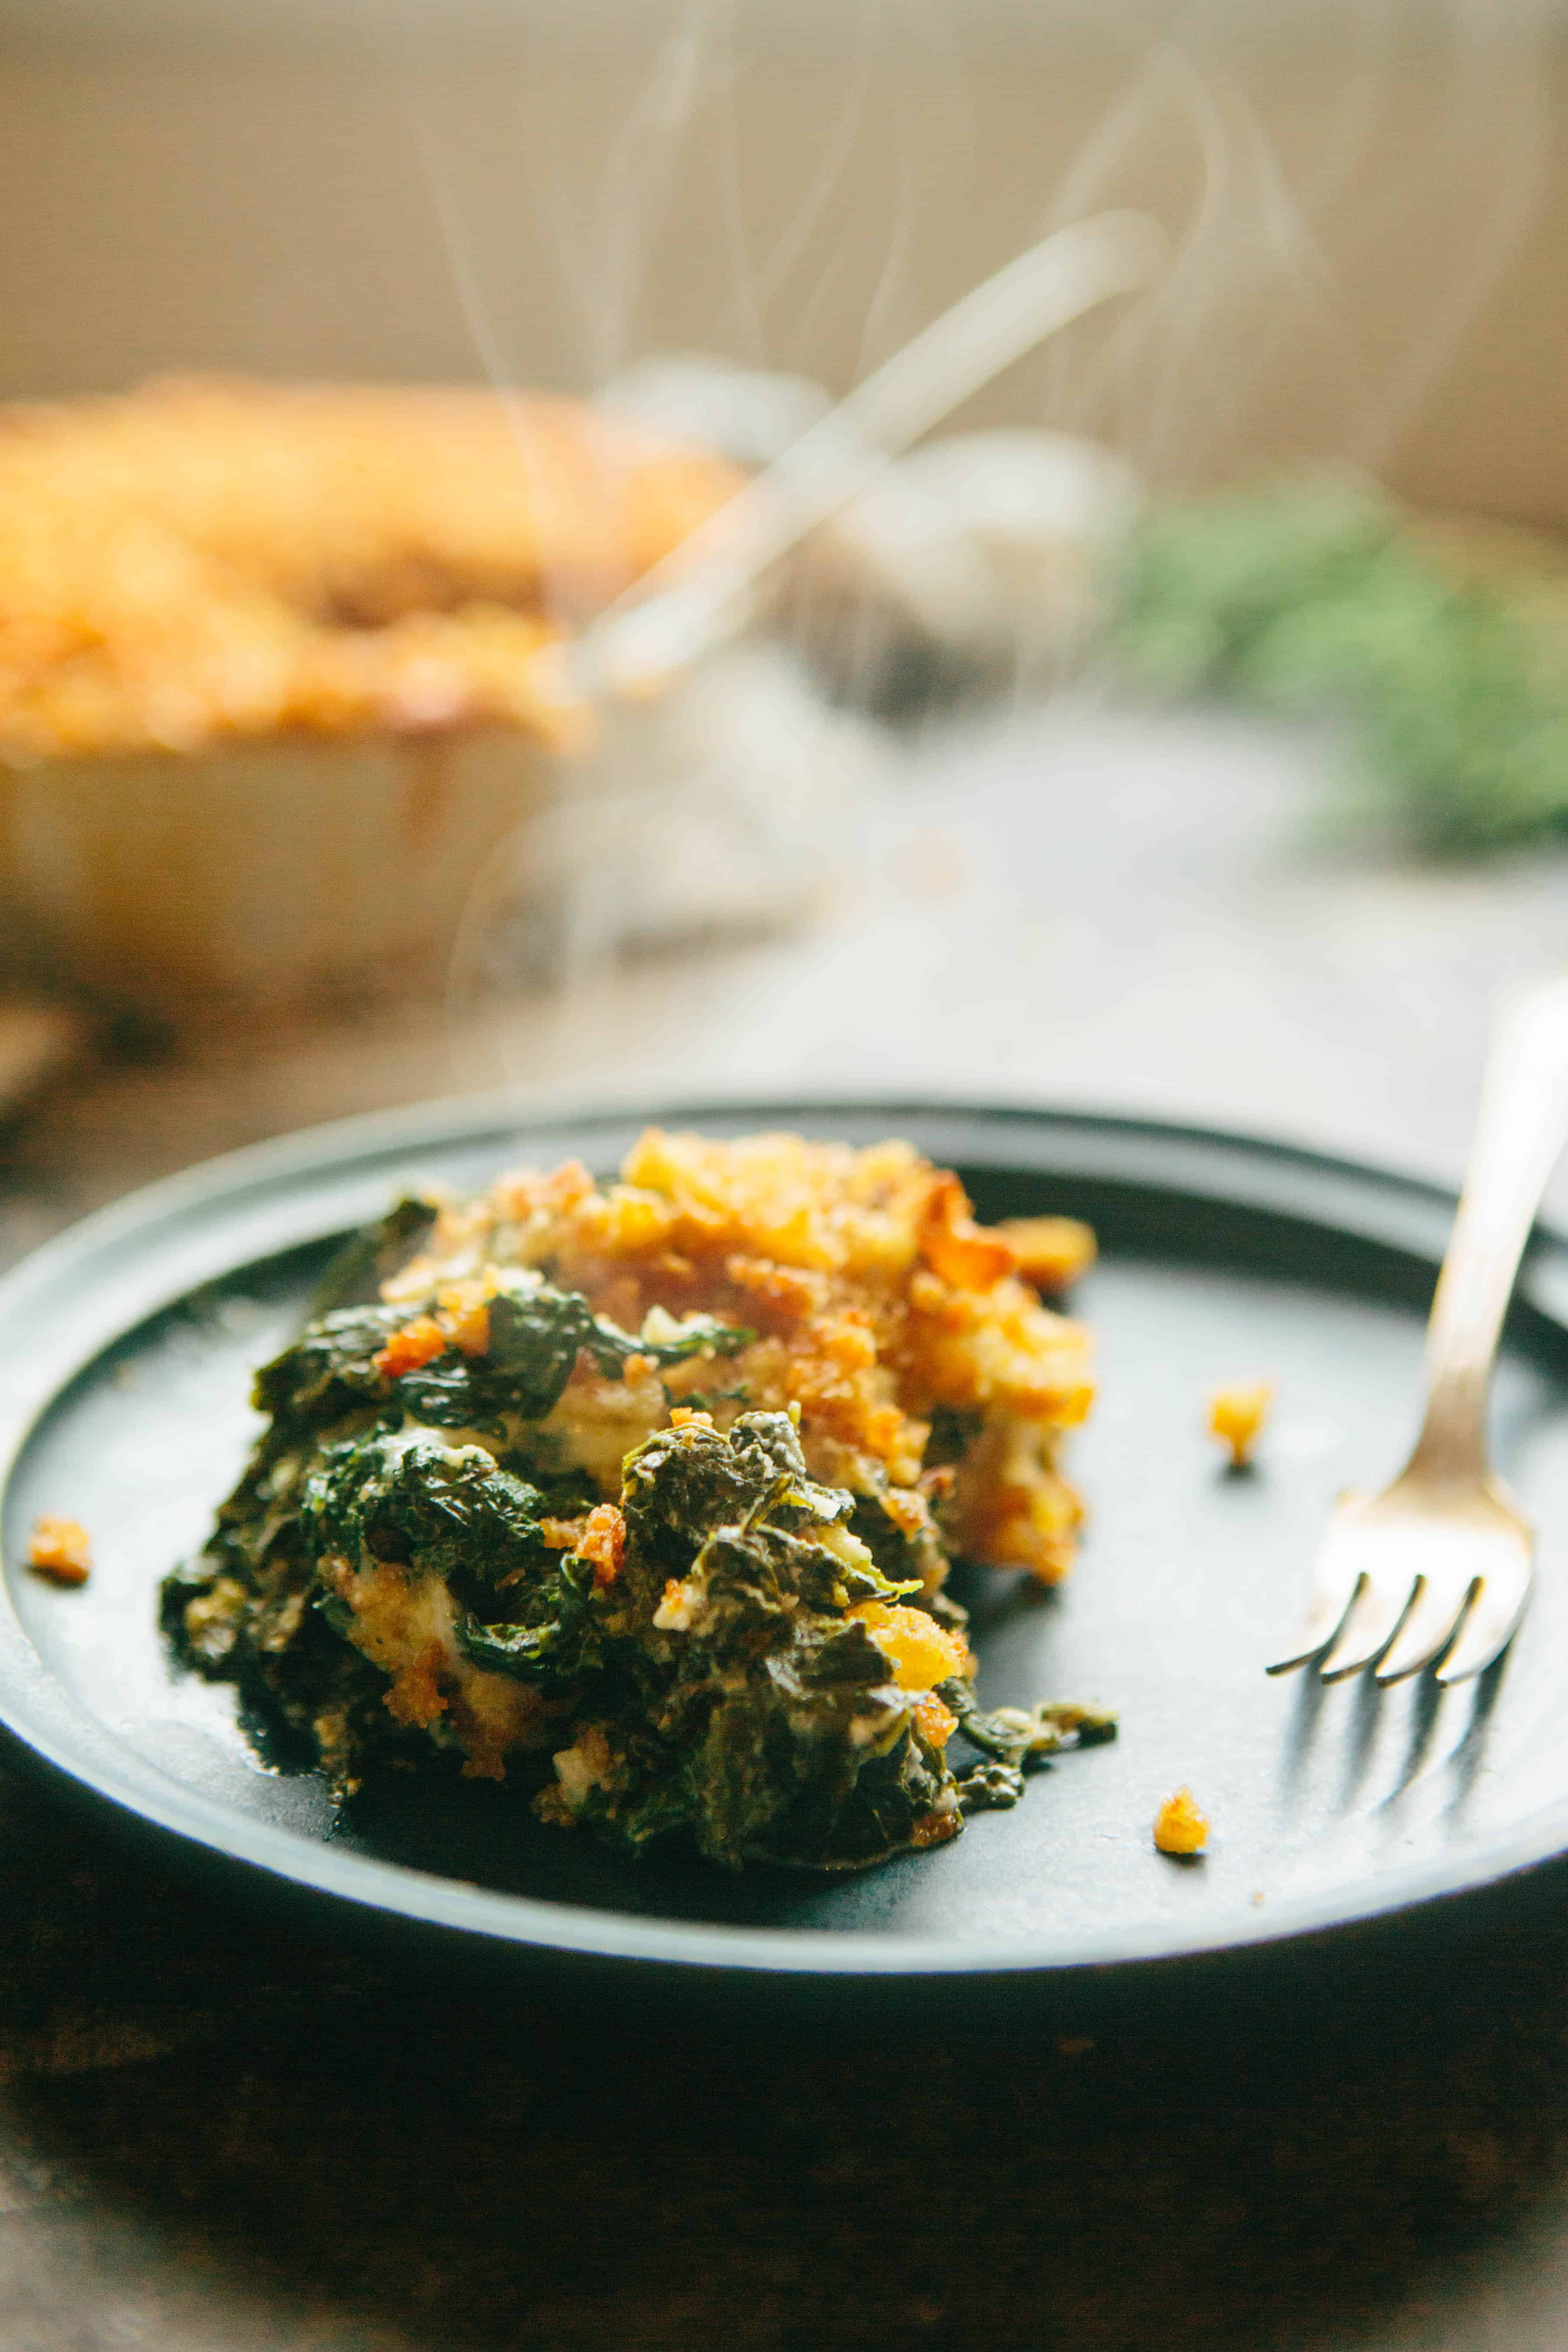 Cheese kale gratin on a small blue plate with a fork.